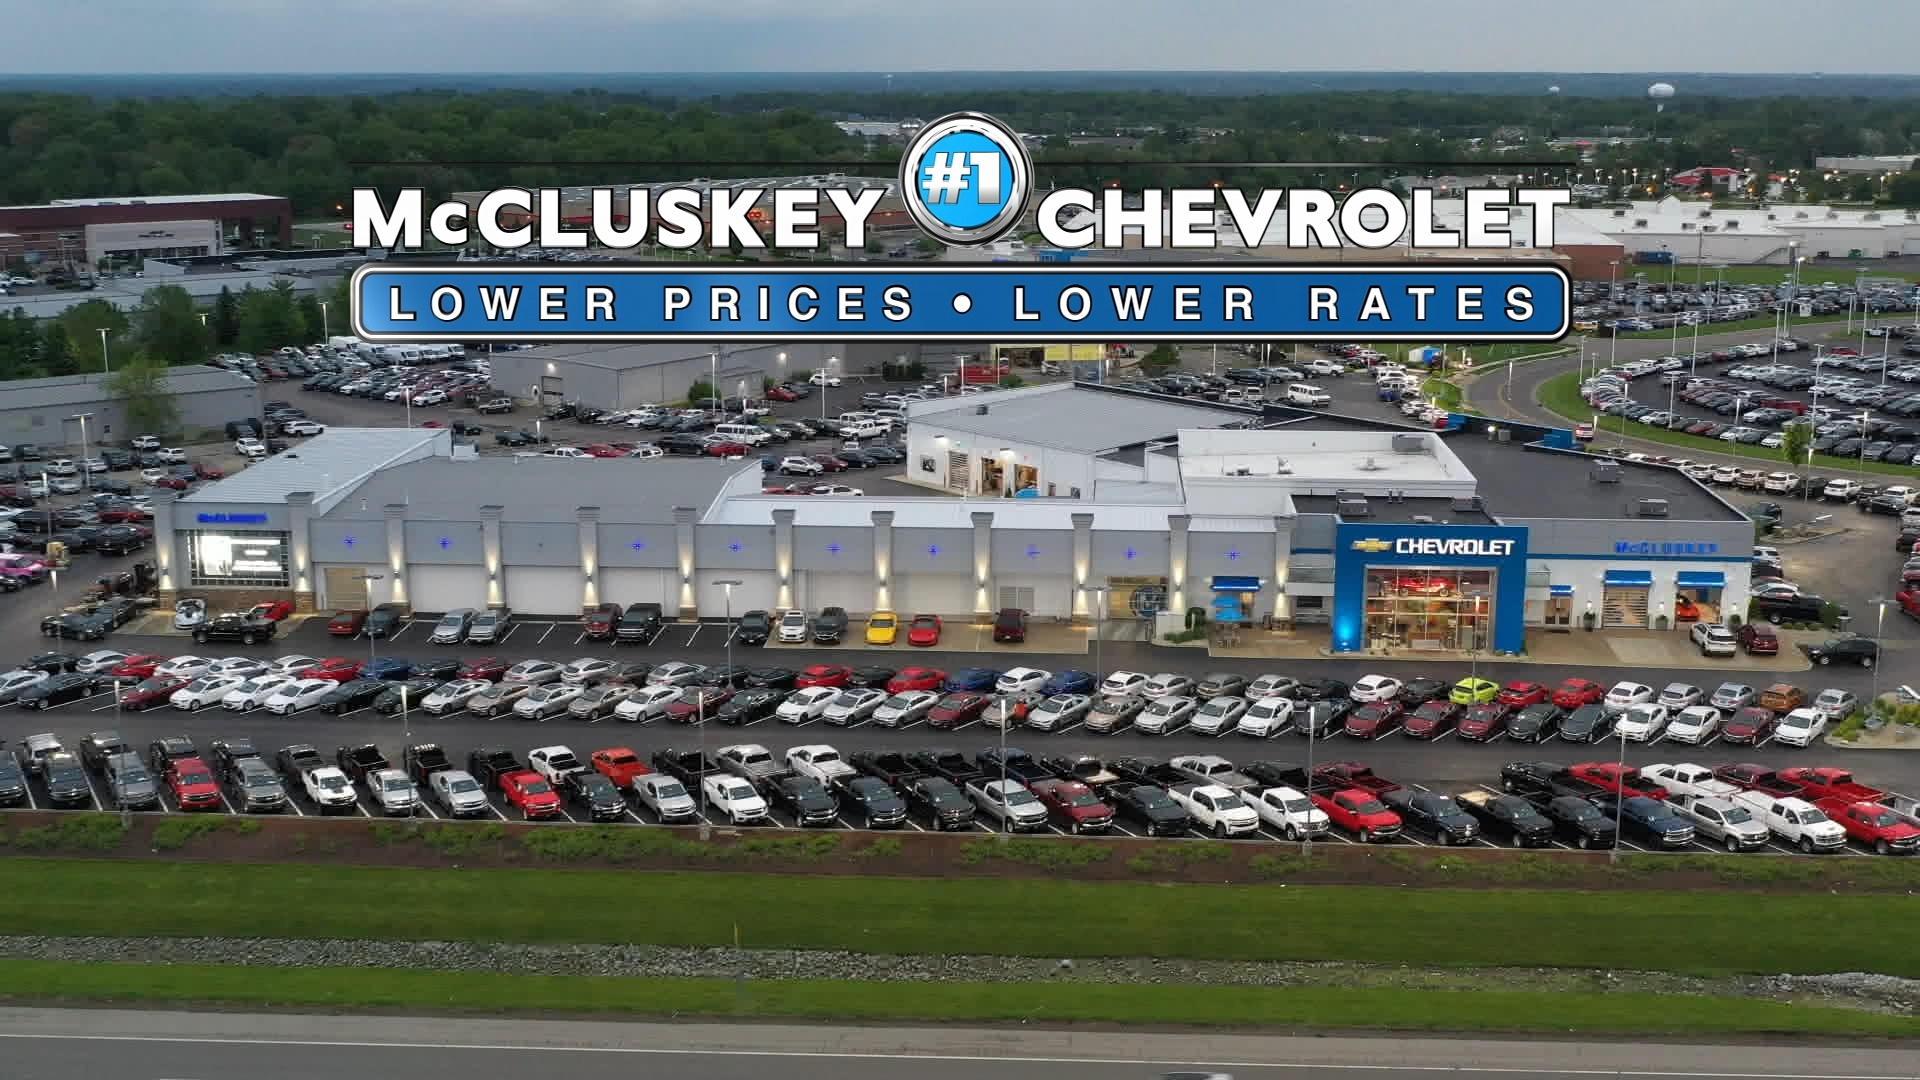 Mccluskey Chevrolet Earns Two Gm Awards Dealer Of The Year And 1 Volume New Car Chevy Dealer In The World Business Wire